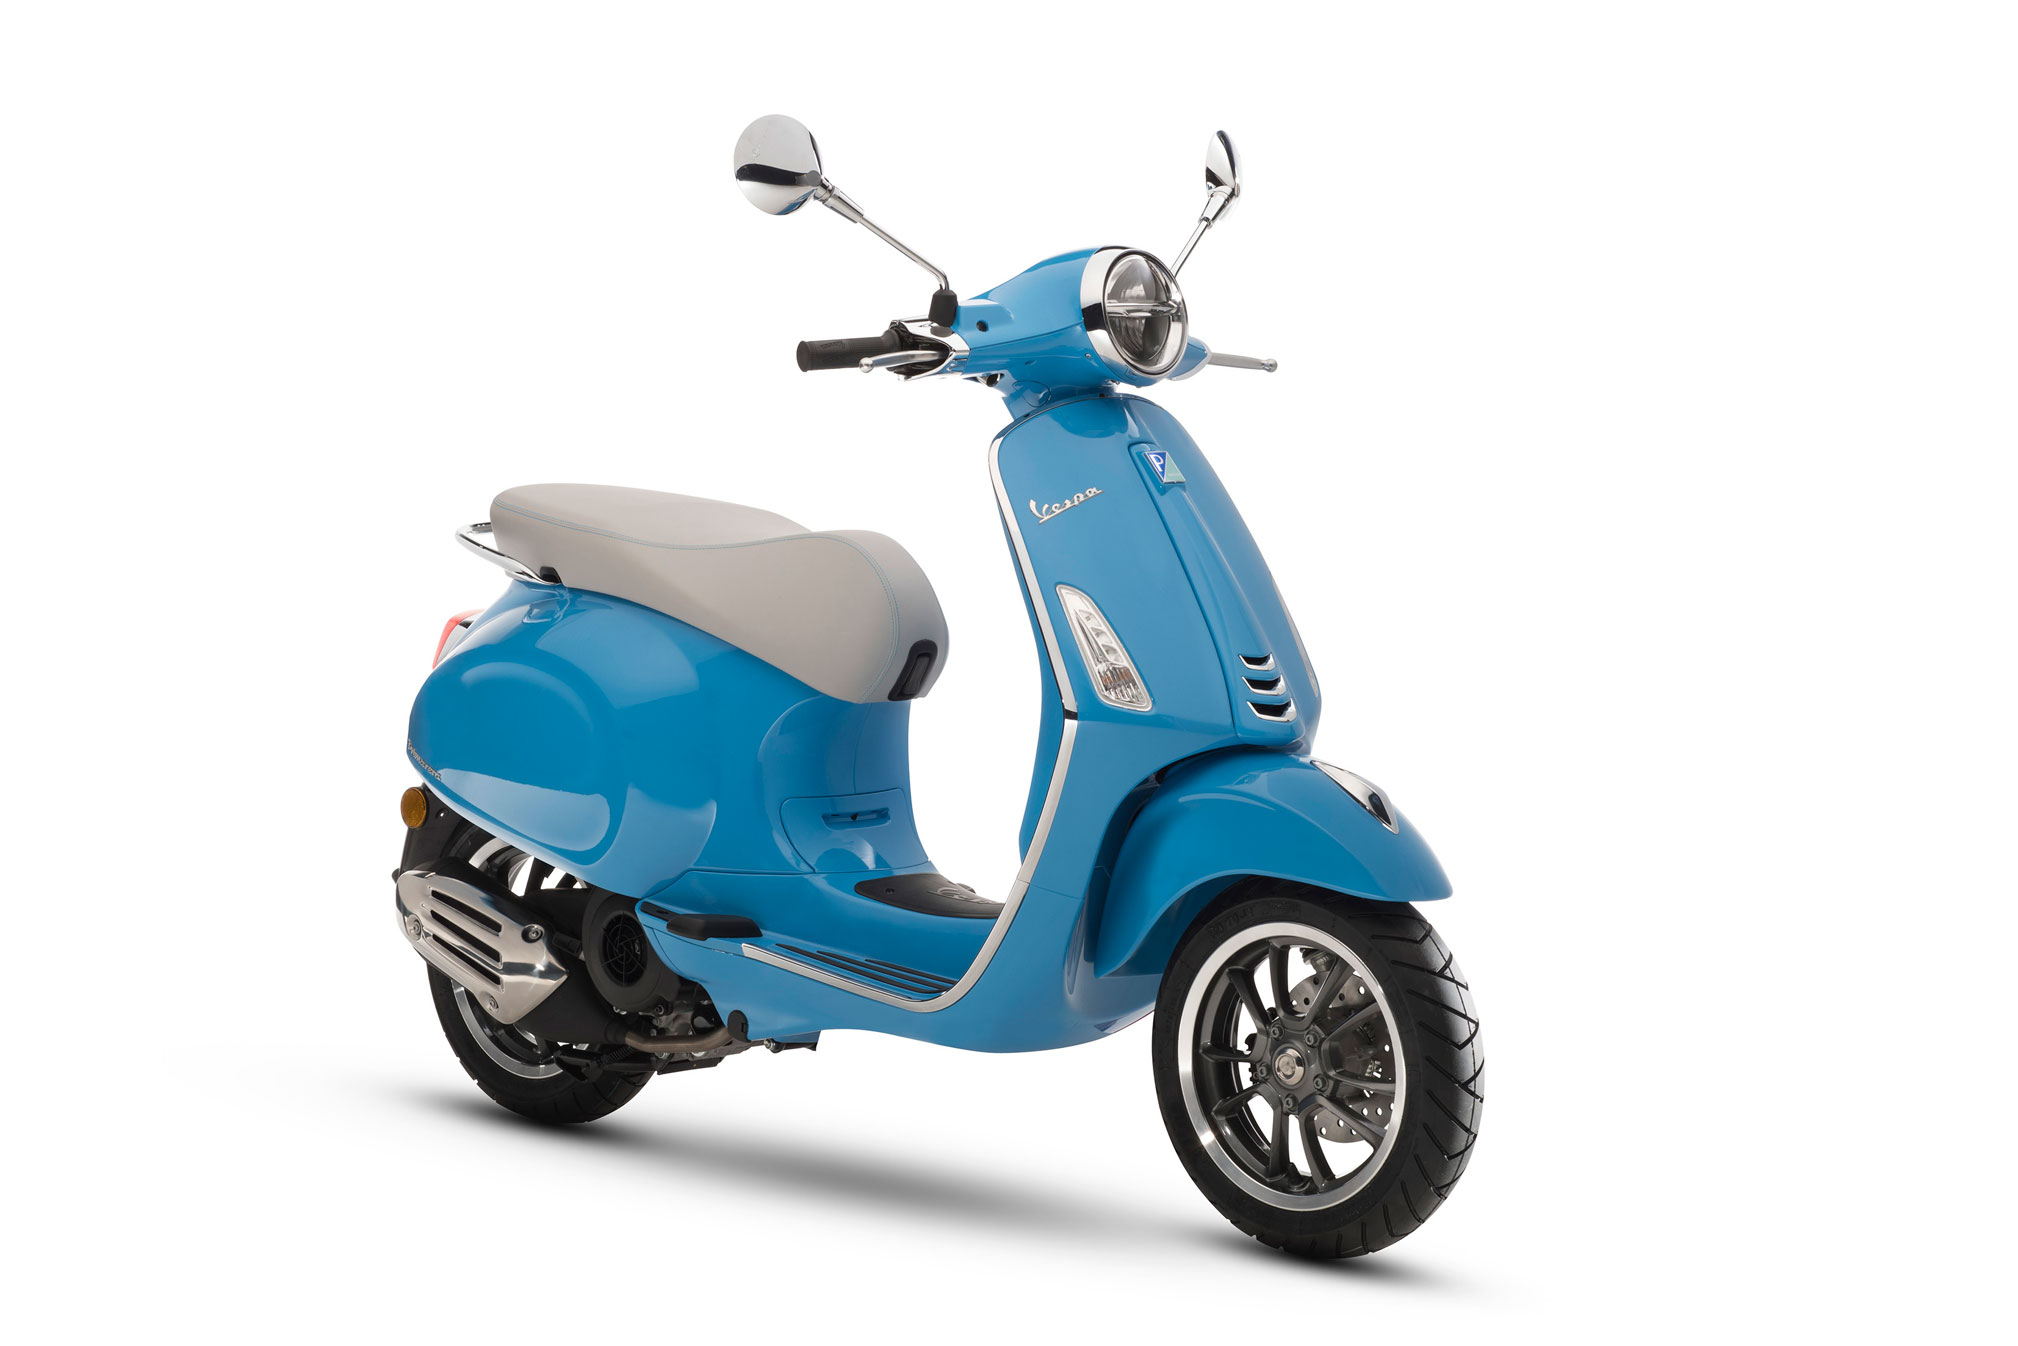 2018 vespa primavera 150 touring review totalmotorcycle. Black Bedroom Furniture Sets. Home Design Ideas